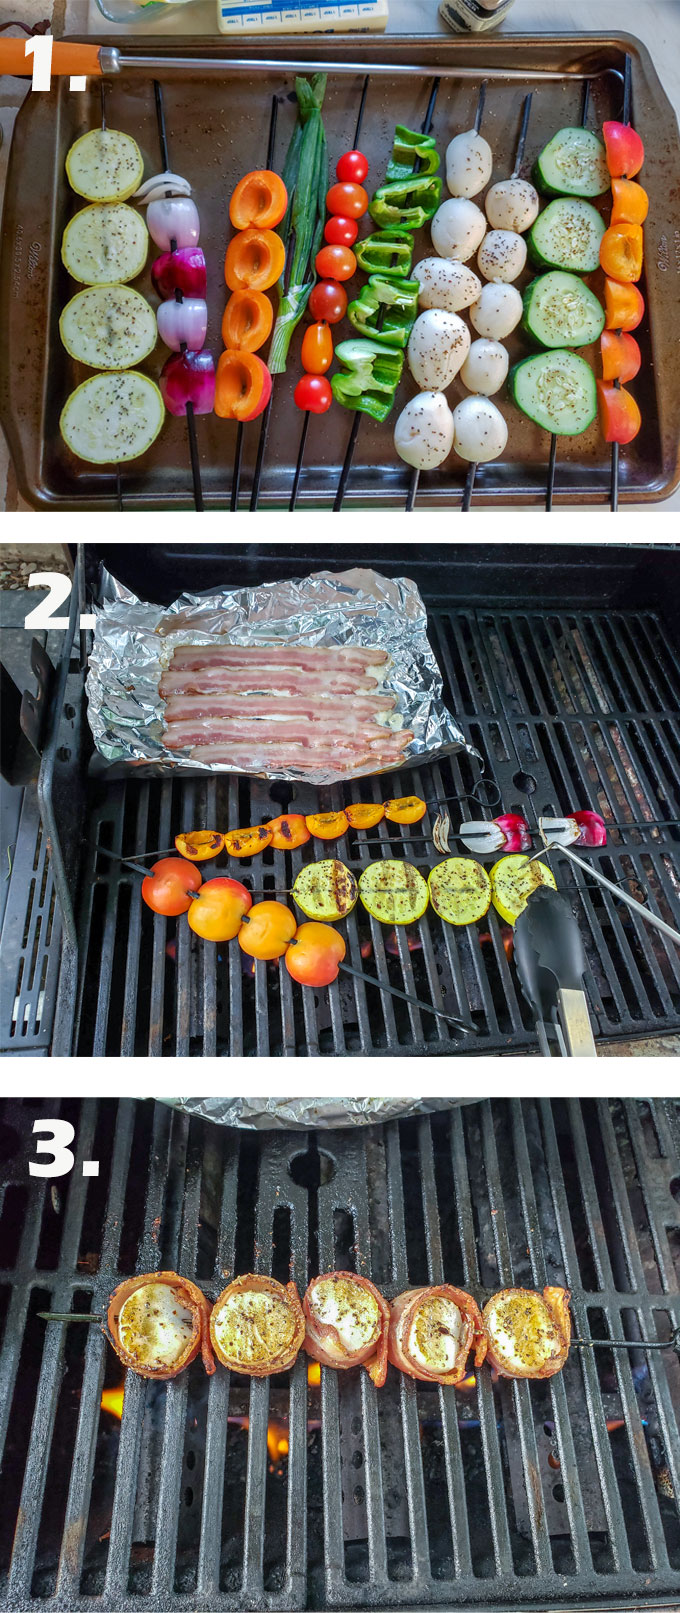 Vegetables on skewers. Bacon on tin foil. scallops wrapped in bacon.